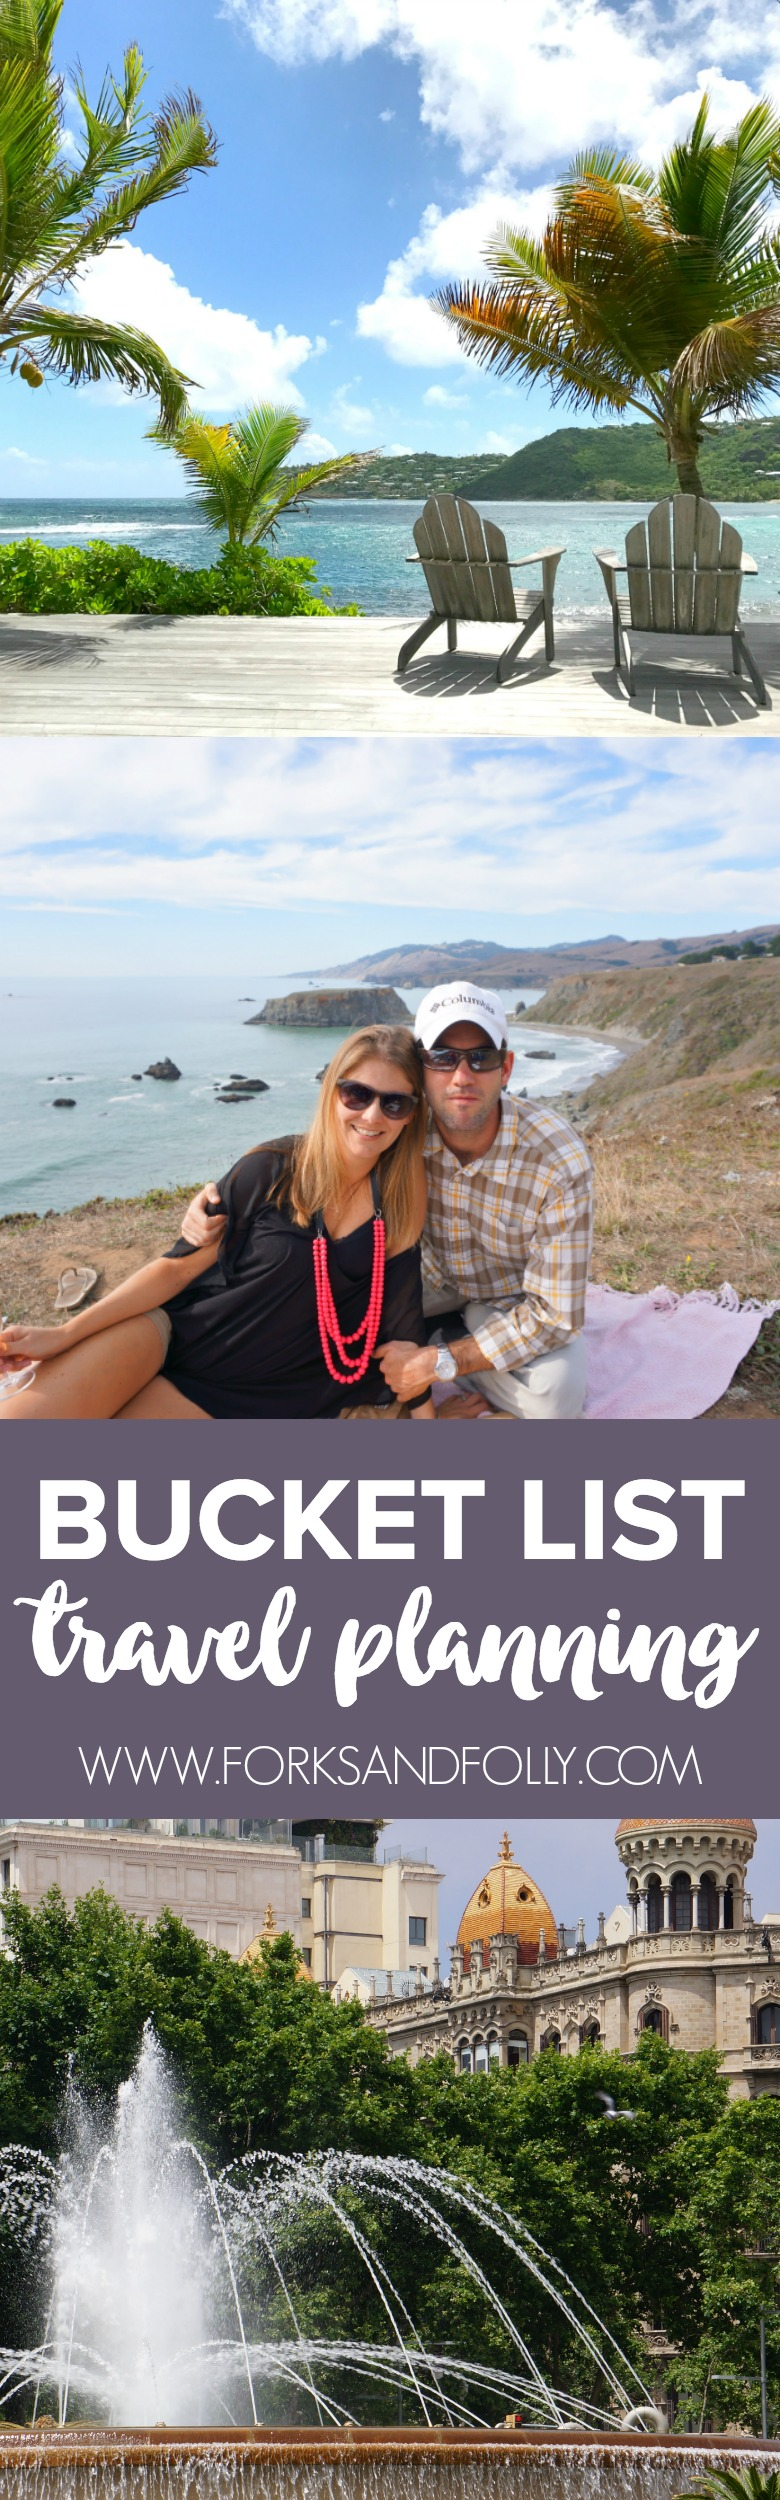 From day trips to bucket list travel planning, get the advice and inspiration for your next big adventure.Seven must-read travel planning tips!